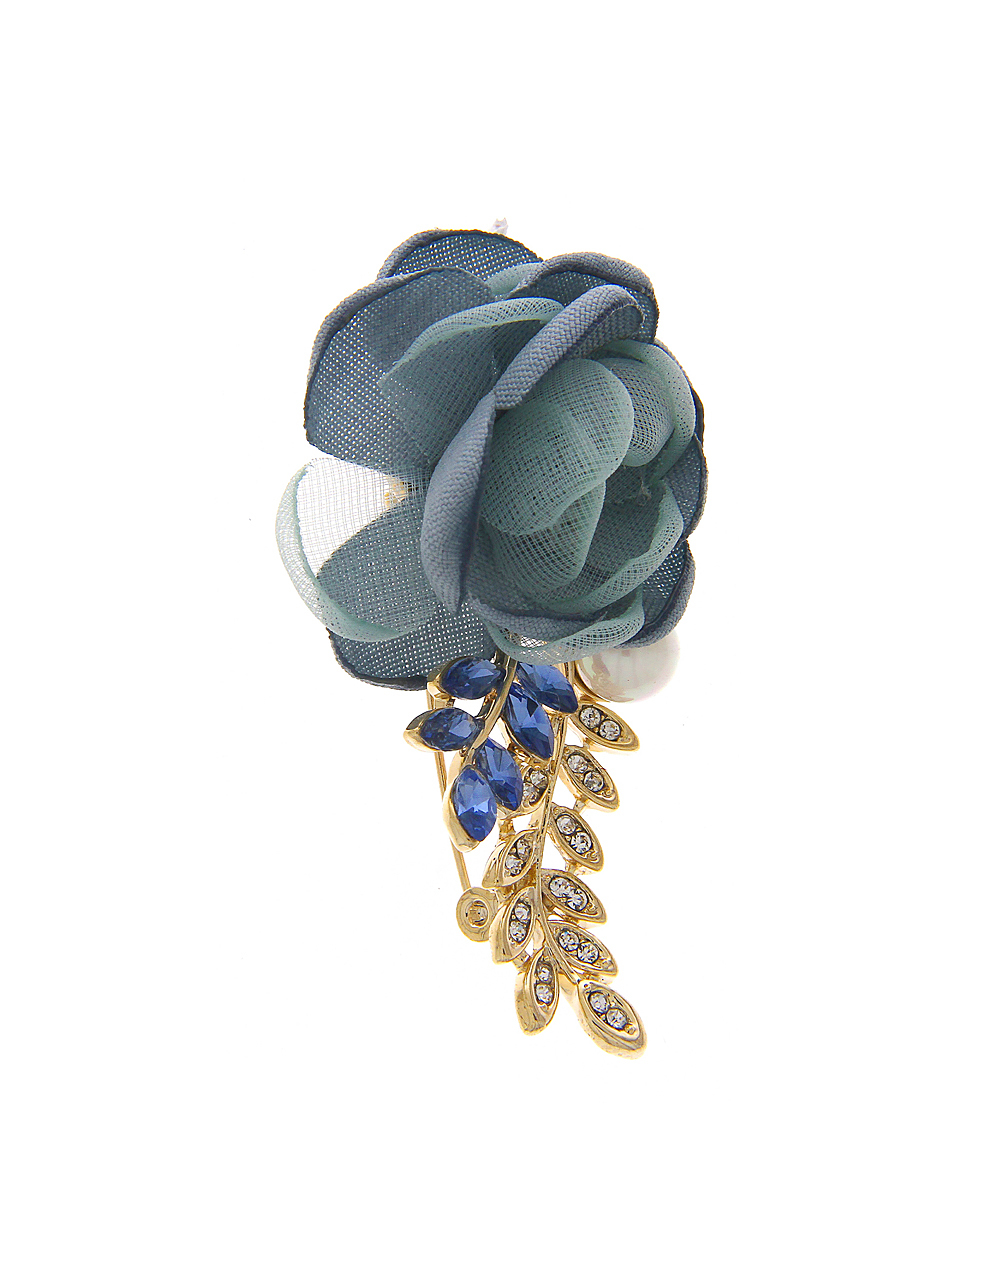 Blue Colour Brooch Styled with Sparkling Stones for Men